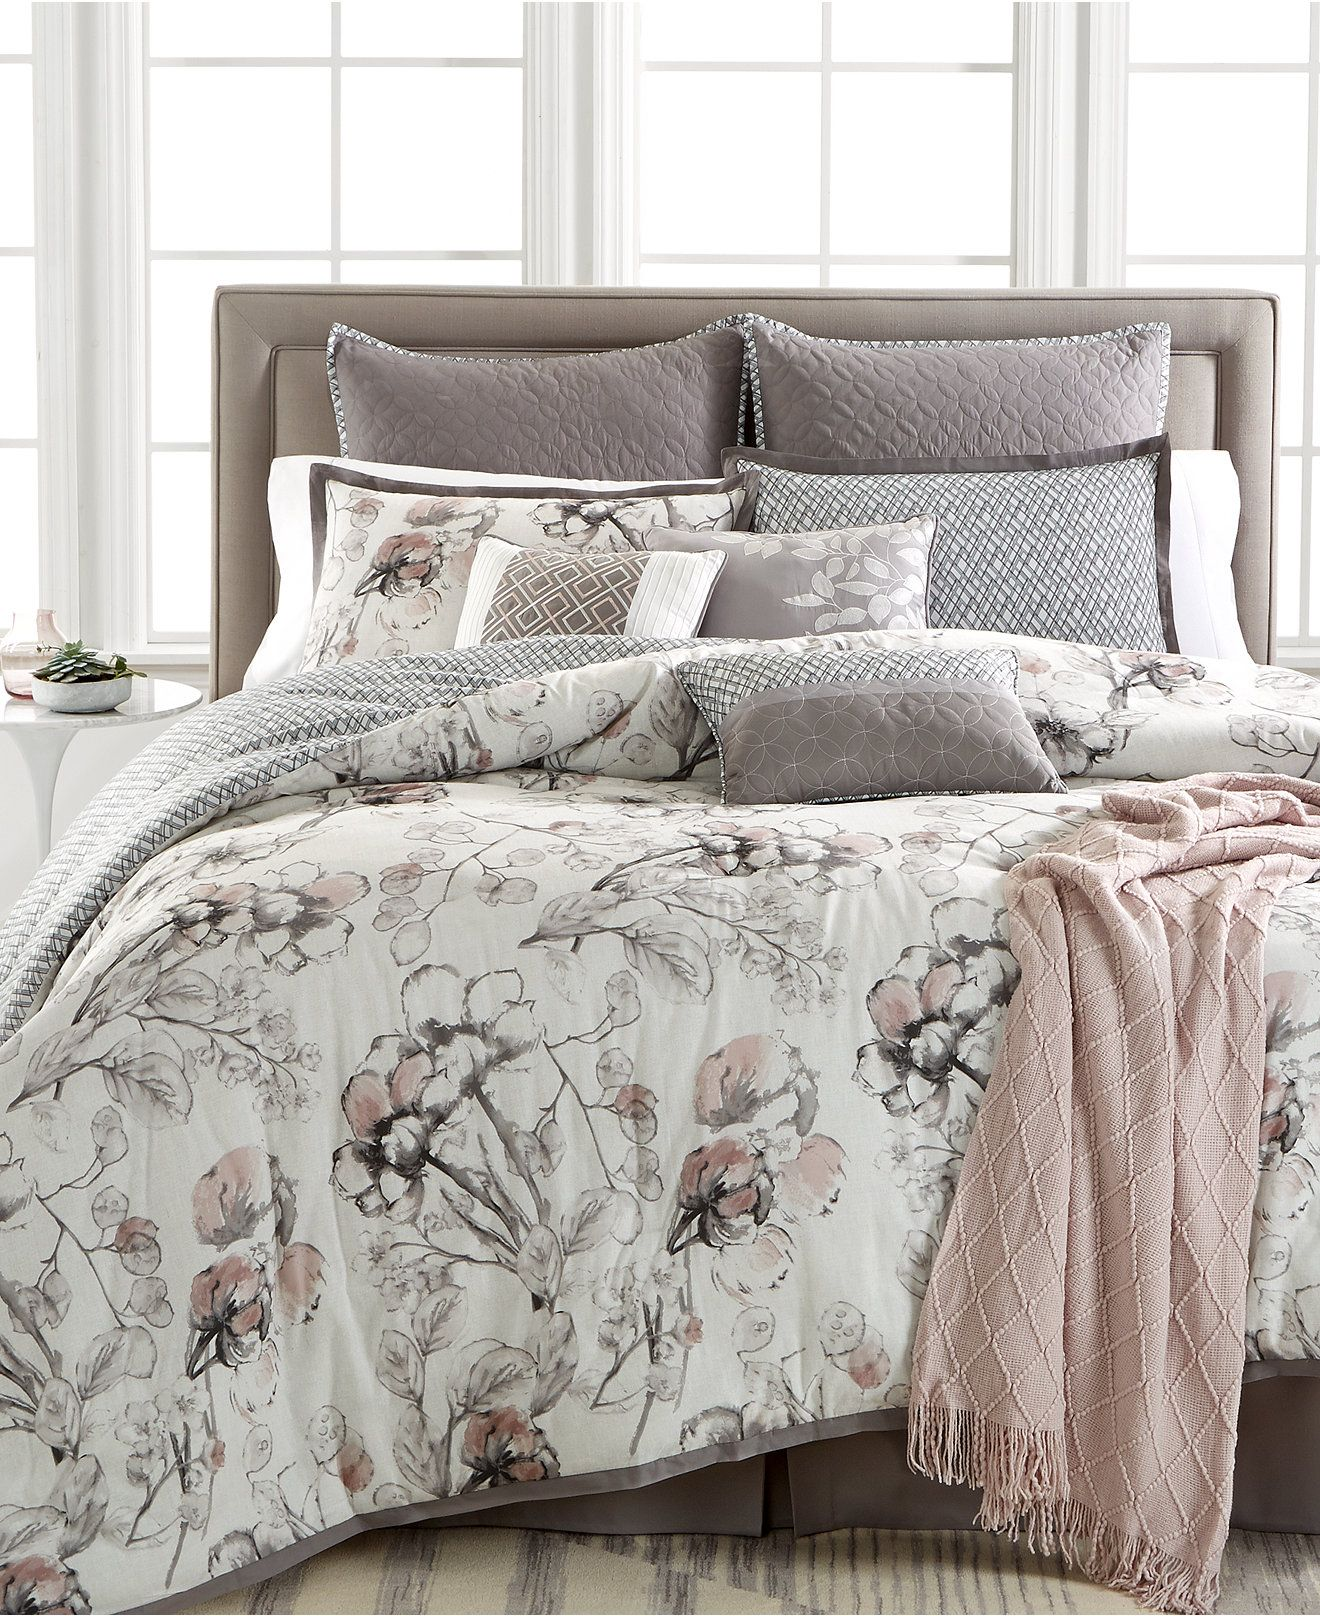 kelly ripa home pressed floral piece comforter sets only at  - kelly ripa home pressed floral pc reversible comforter sets